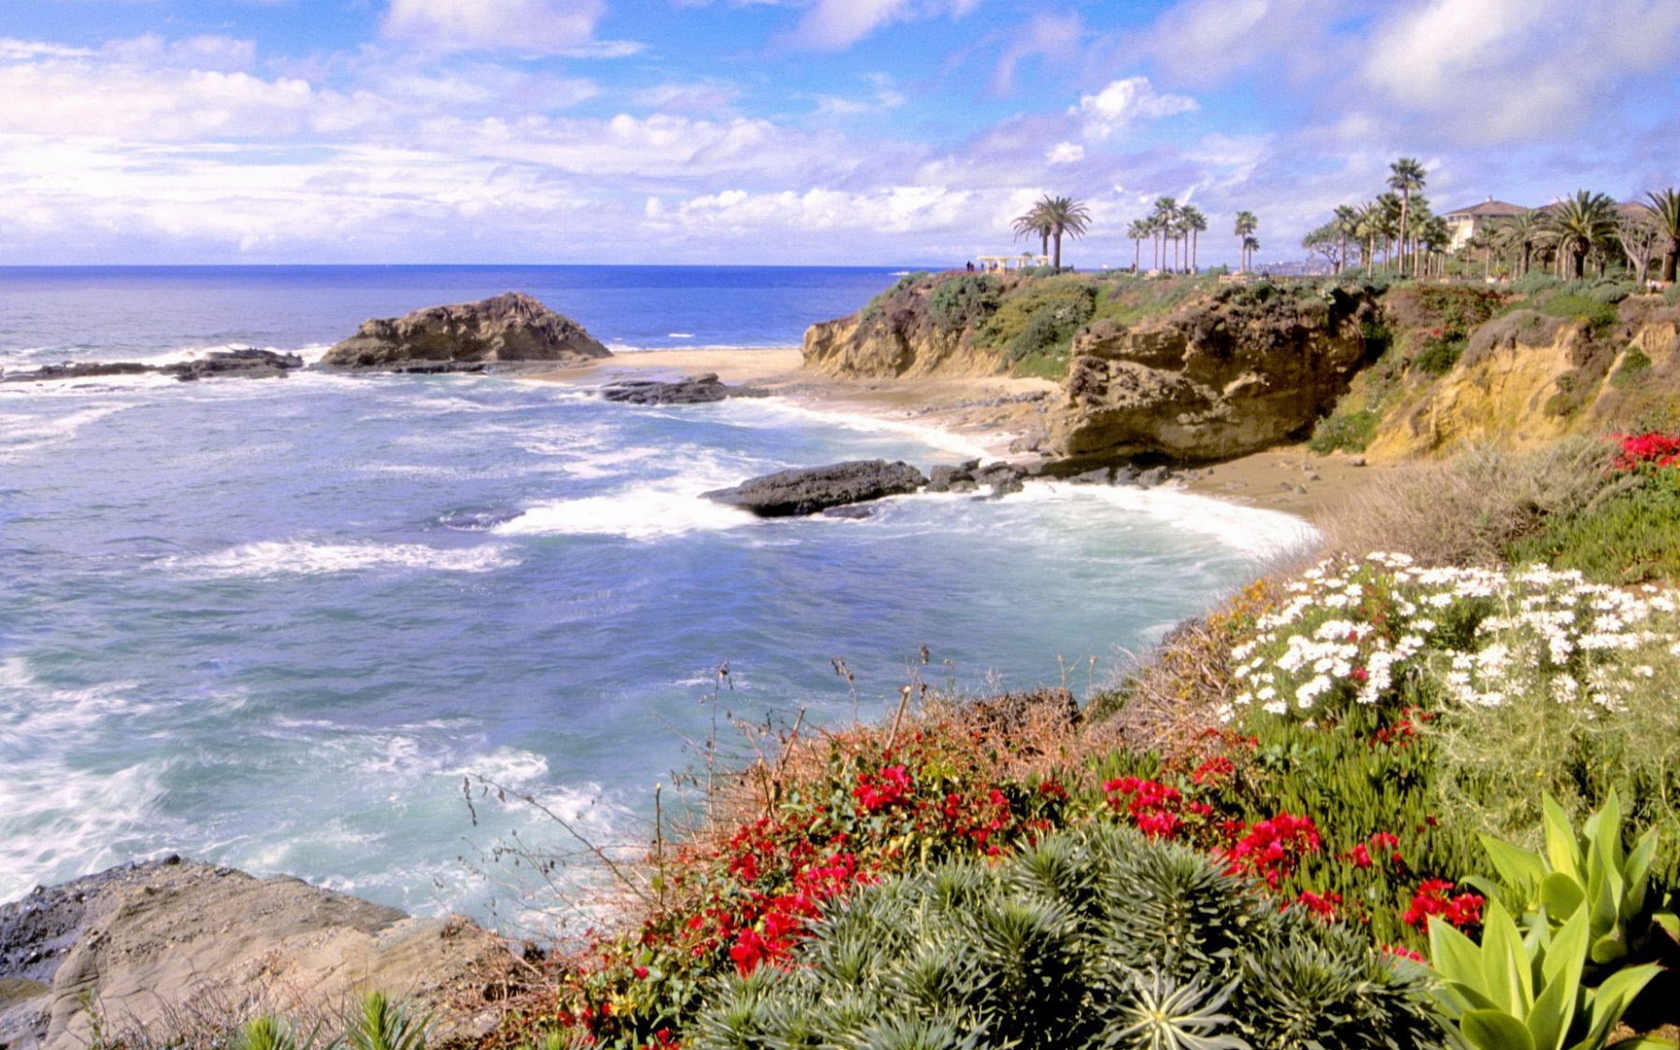 Download Wallpaper 1680x1050 coast, sea, flowers, multi colored, waves 582